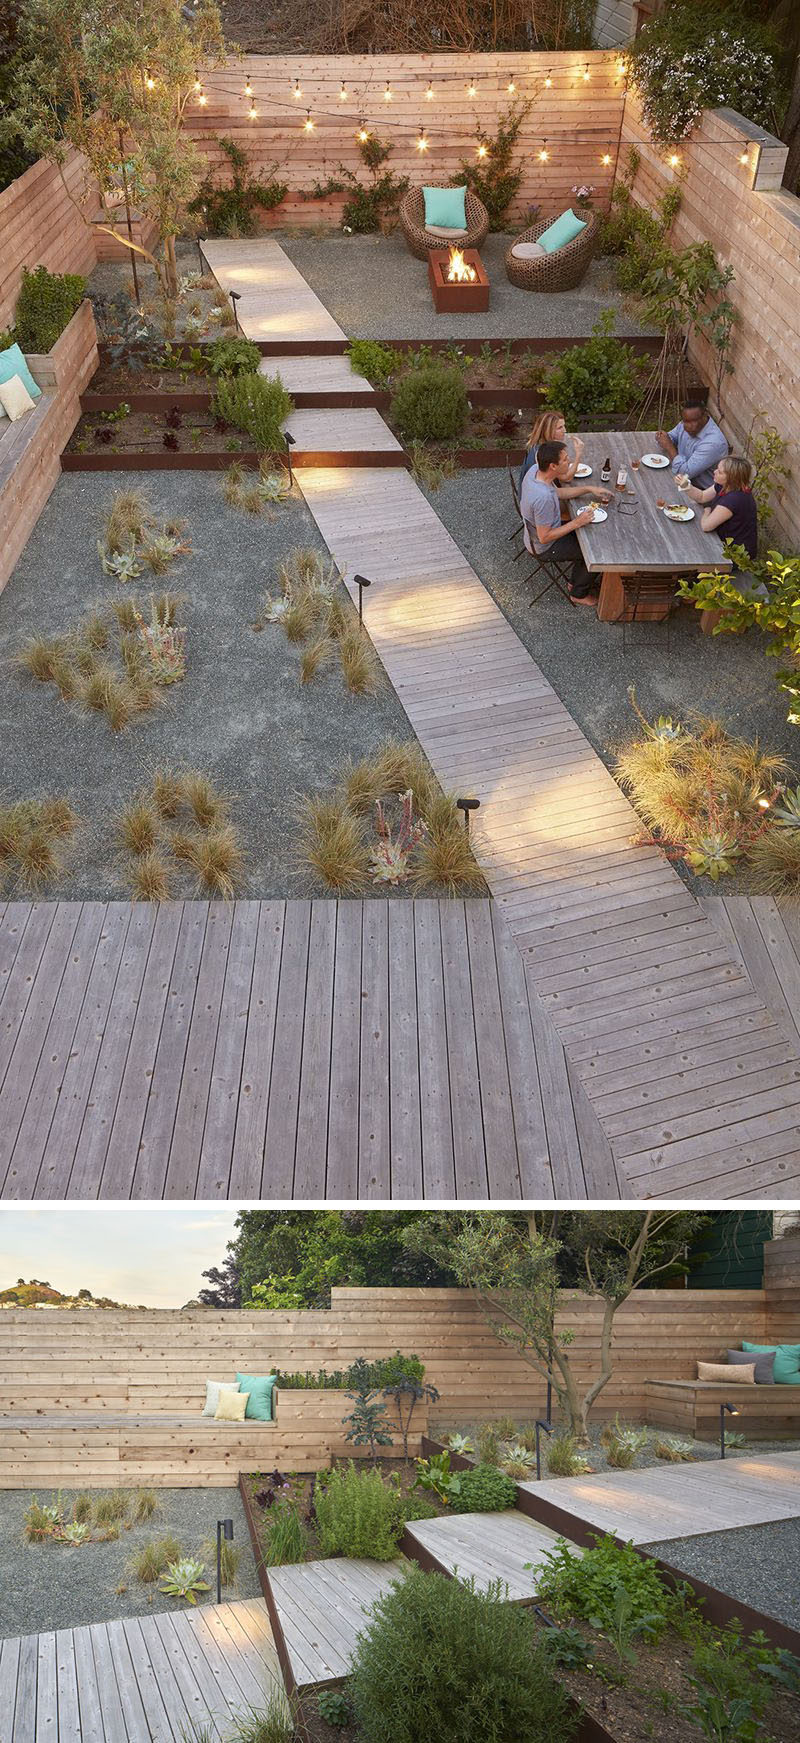 Landscaping Design Ideas - 11 Backyards Designed For ... on Small Backyard Entertainment Area Ideas id=62632